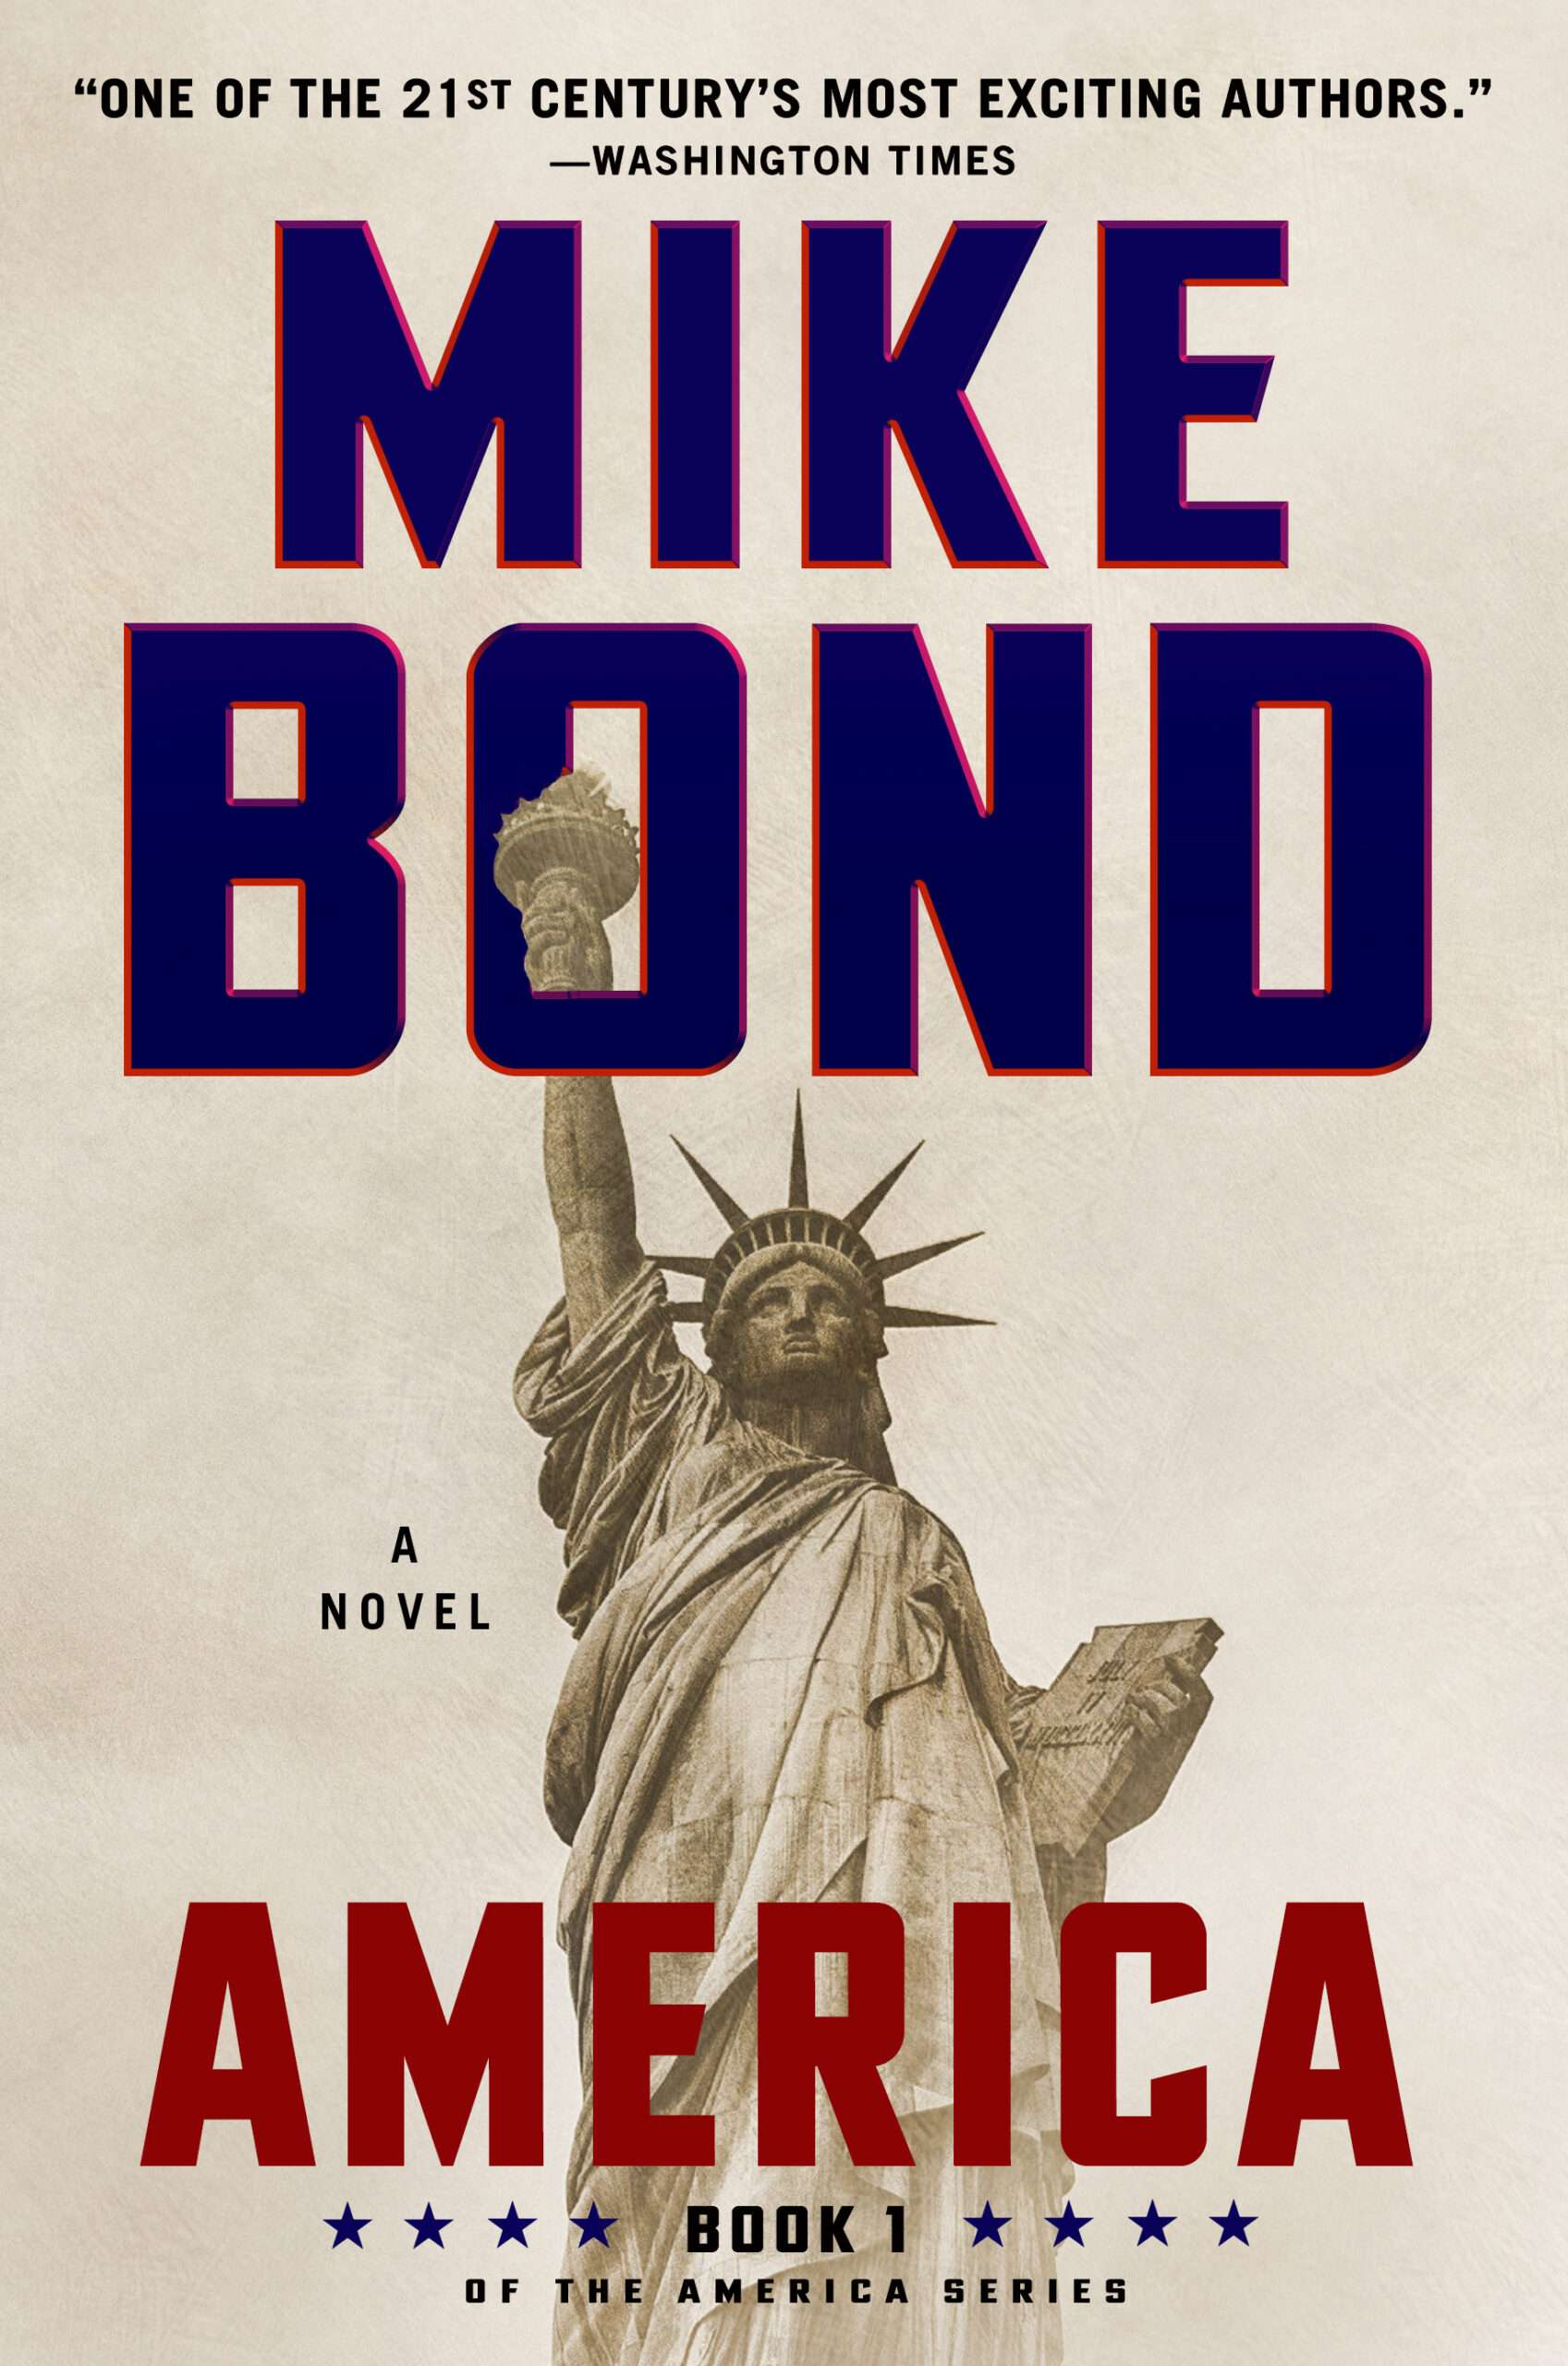 America - Front Cover - Mike Bond Books